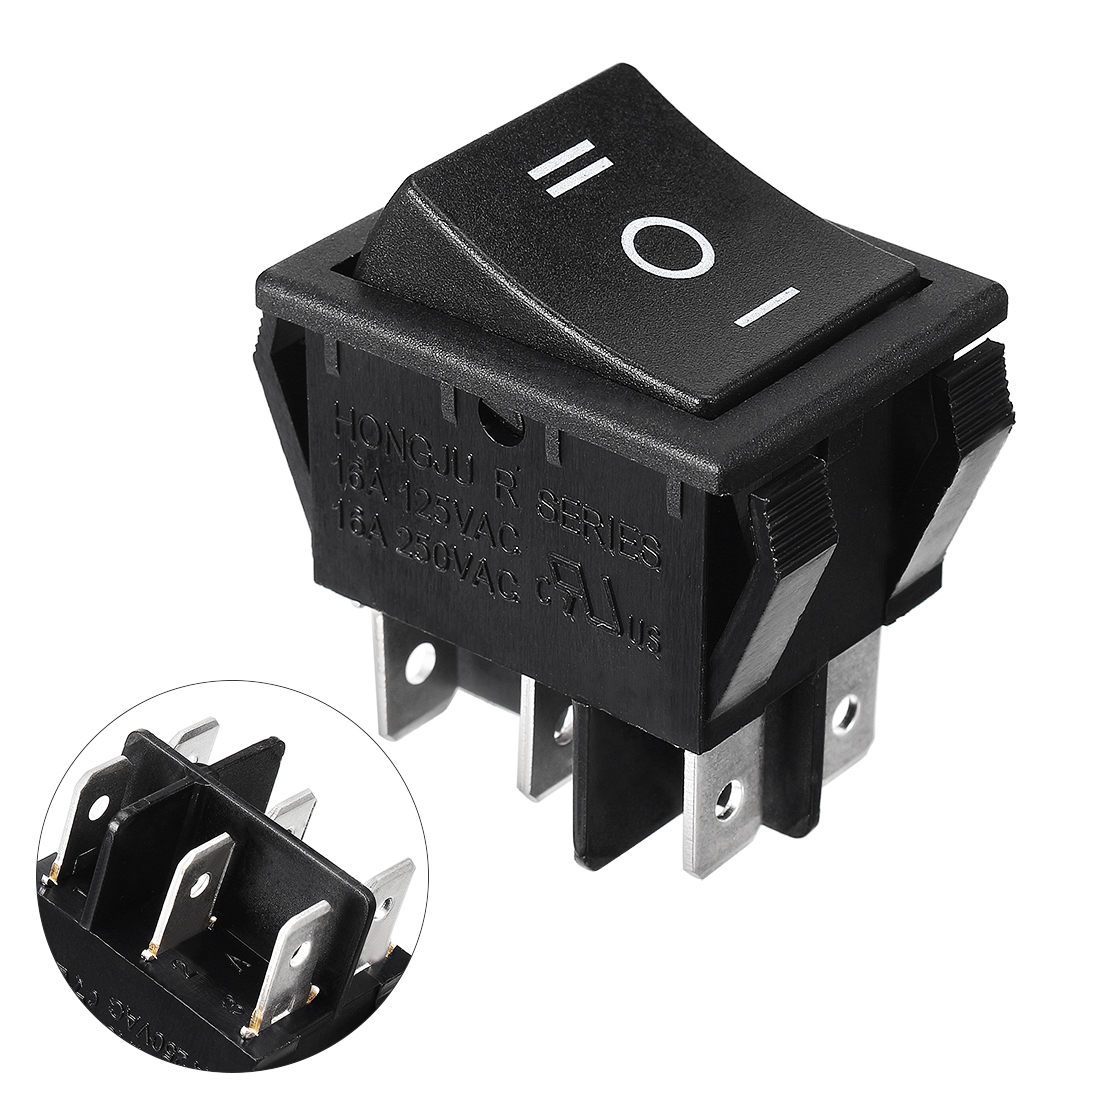 Black On/Off/On DPDT Boat Rocker Switch 16A/250V 20A/125V AC UL Listed